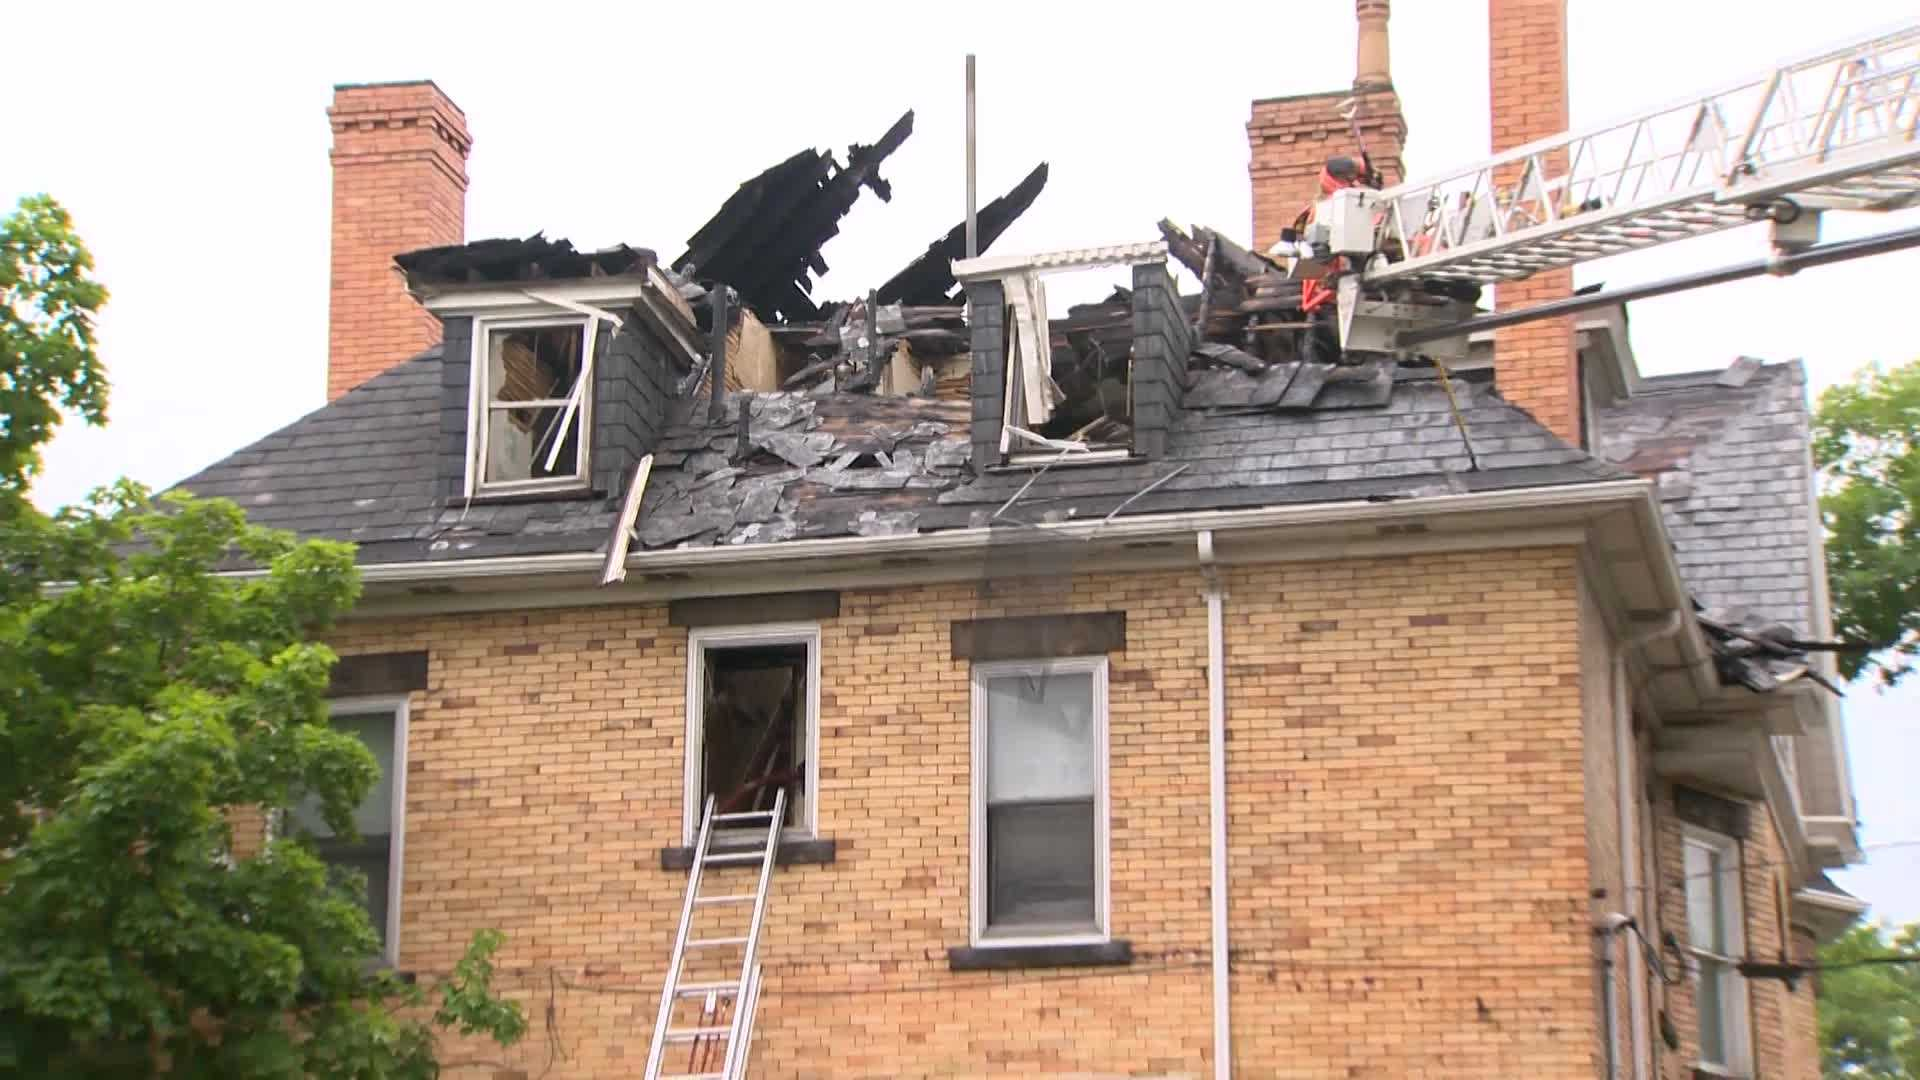 A picture sent to Pittsburgh's Action News 4 from a viewer showed heavy smoke and flames at the top of the structure.